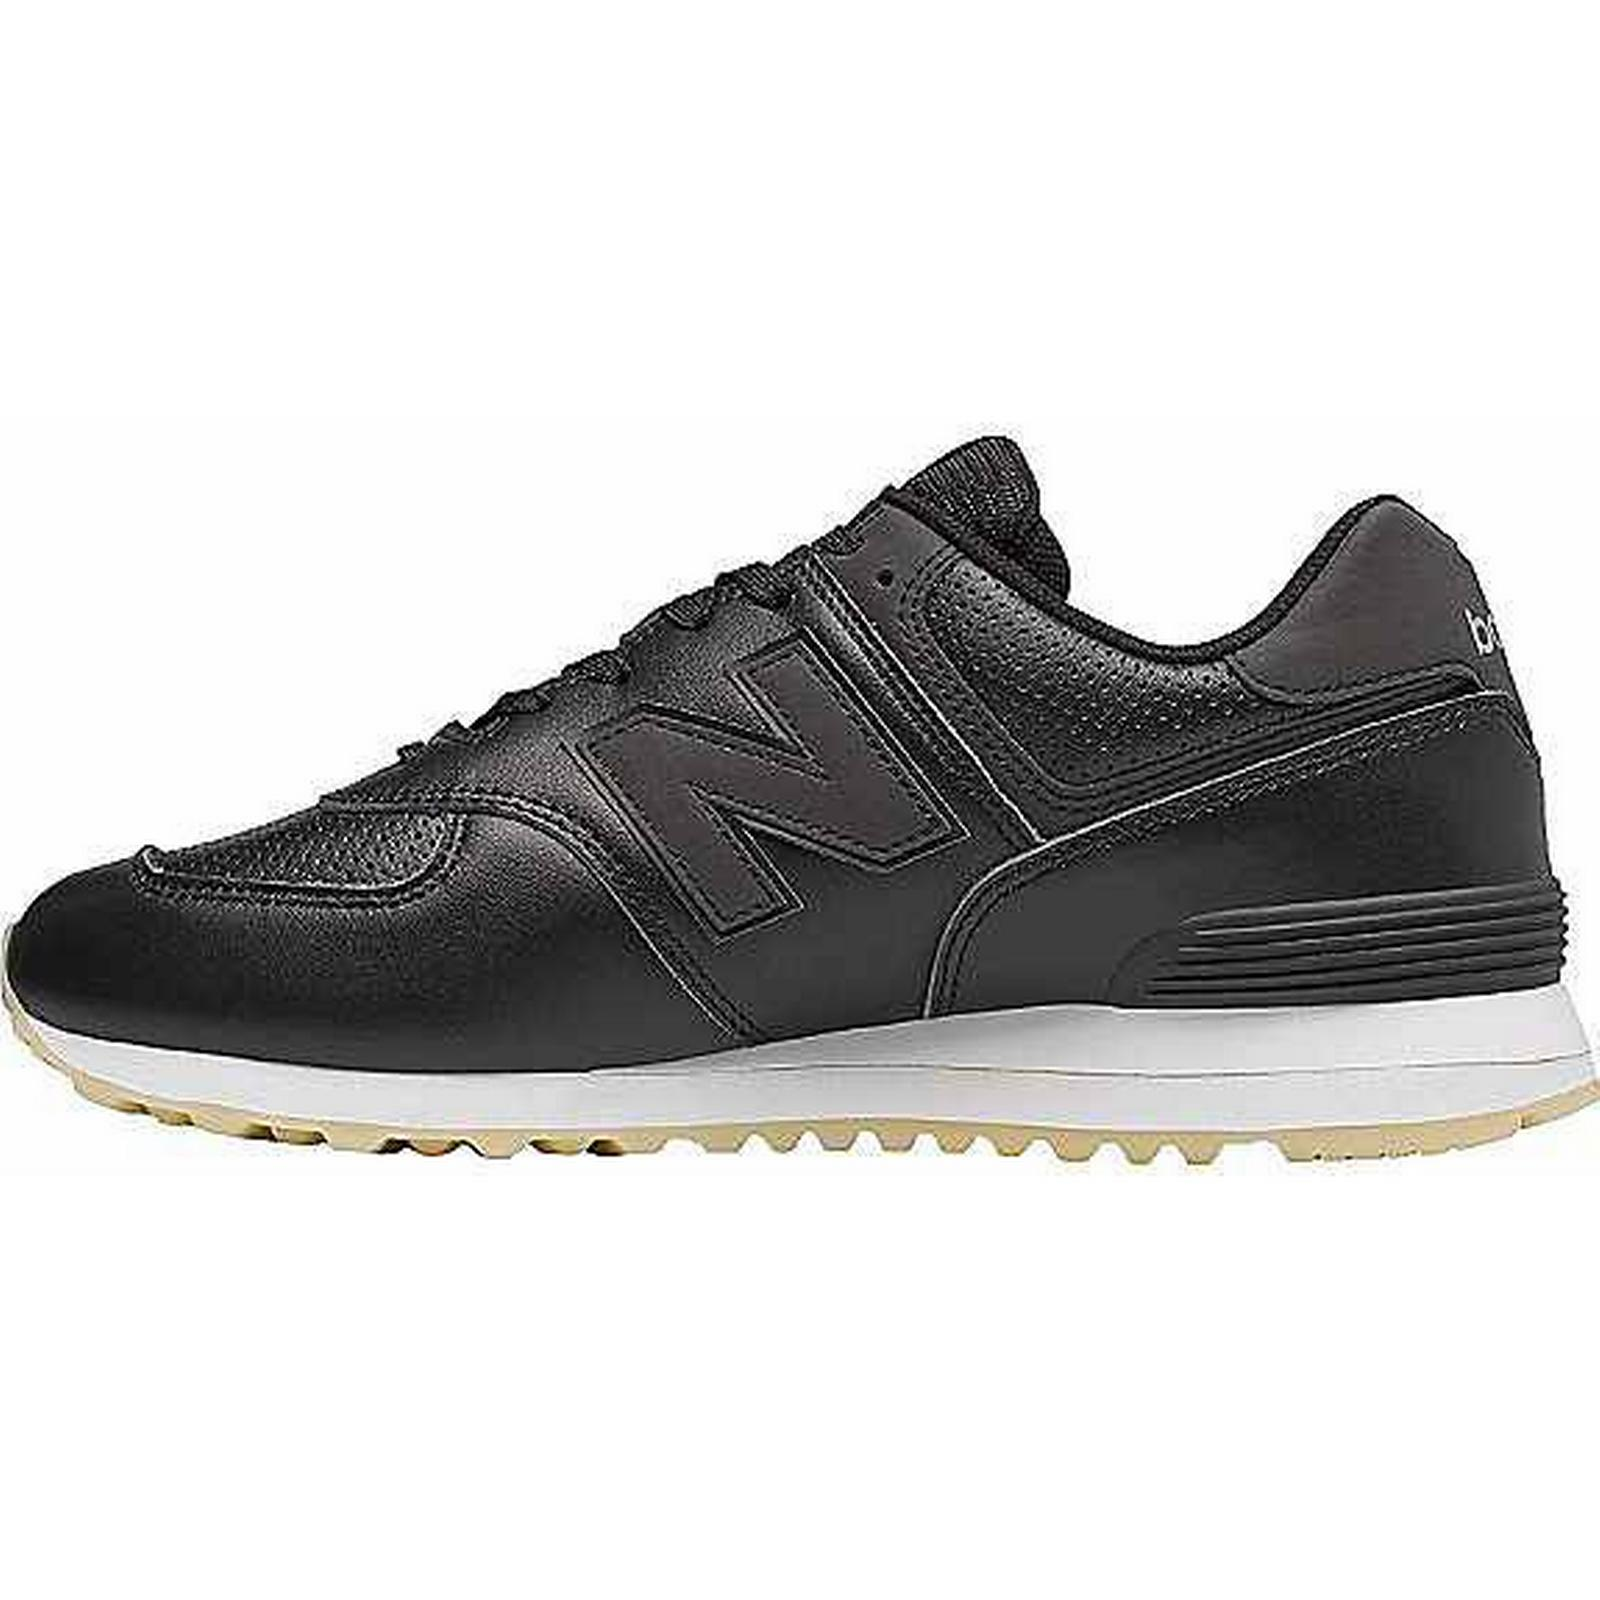 New Trainers Balance Leather Trainers New by New Balance-Gentleman/Lady- highlight ba1cee